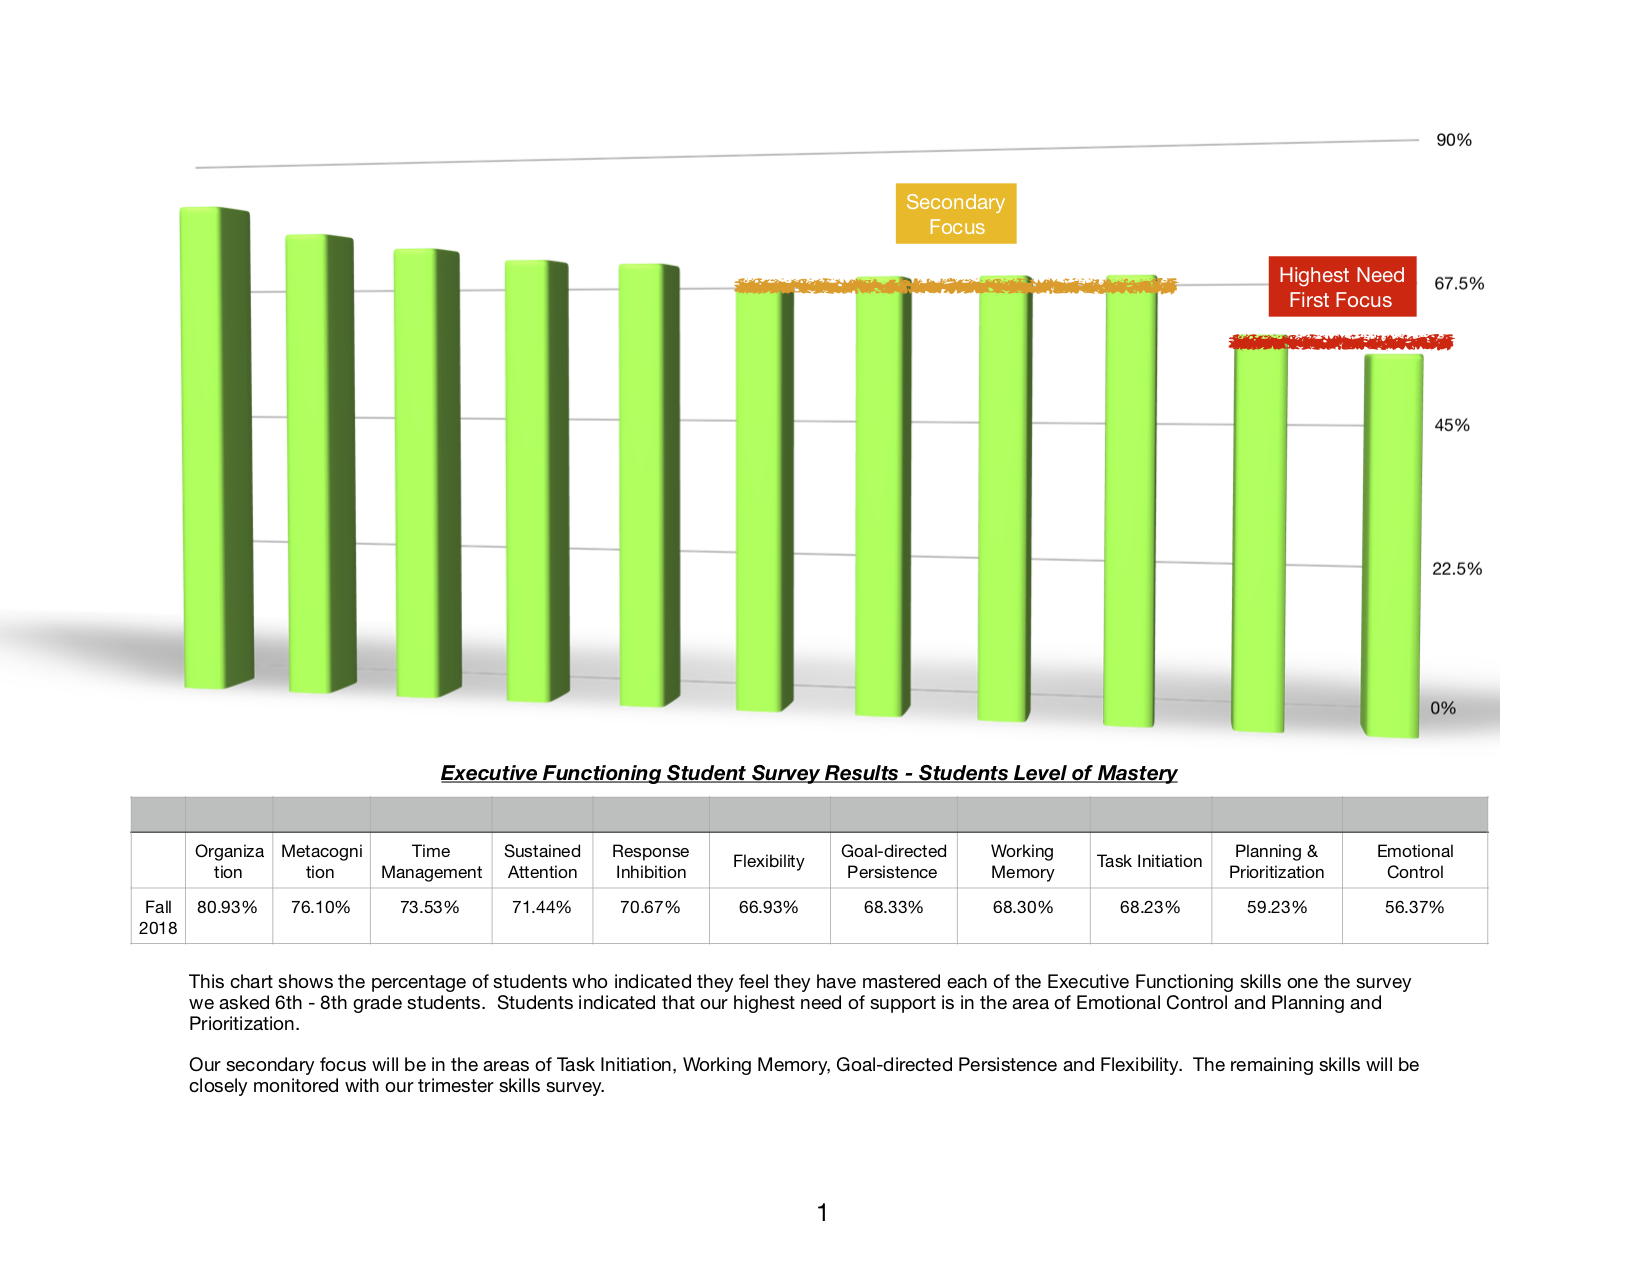 executive functioning student survey results - students level of mastery